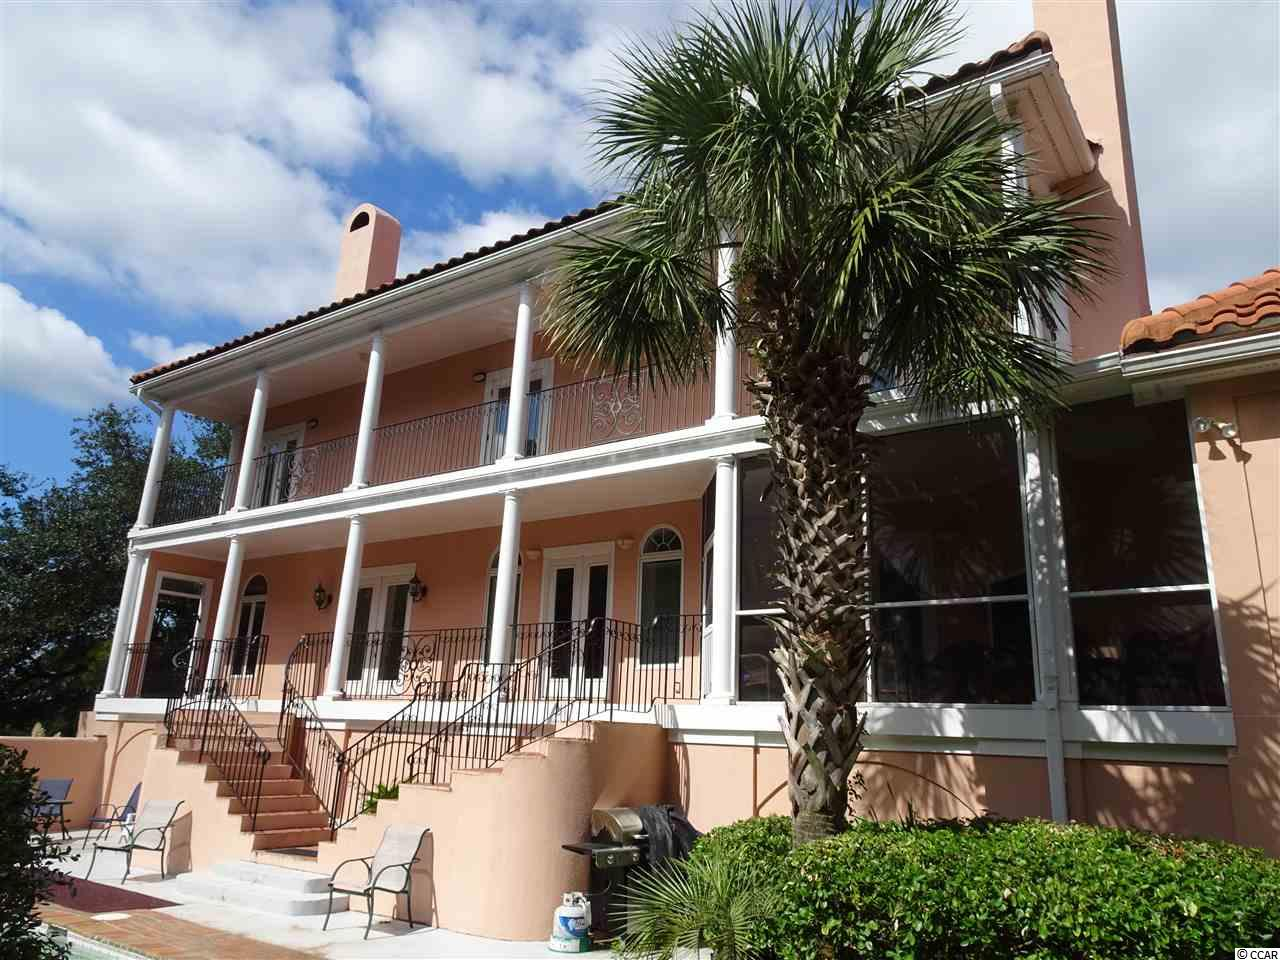 Low Country Charleston Home surrounded by majestic live oaks located in the beautiful ocean front community of DeBordieu Colony just south of Pawleys Island, SC. Wide porches and veranda are accessed from almost every room of the home and overlook a wonderful private pool. This traditional home features large living and dining rooms, perfect for family and entertaining, with the open kitchen, den and screened porch serving as the central hub of everyday living. The second floor features 3 bedrooms and two baths with each bedroom featuring double doors to the second floor veranda. The third floor bedroom is best accessed by the elevator but also features a secret back stair. The 5th bedroom is located on the ground floor and features a private bath. 243 Dune oaks is located on a quiet street on the south end of DeBordieu with easy access to the beach and just across the street form the beautiful North Inlet estuary. All information should be verified by the Buyer.